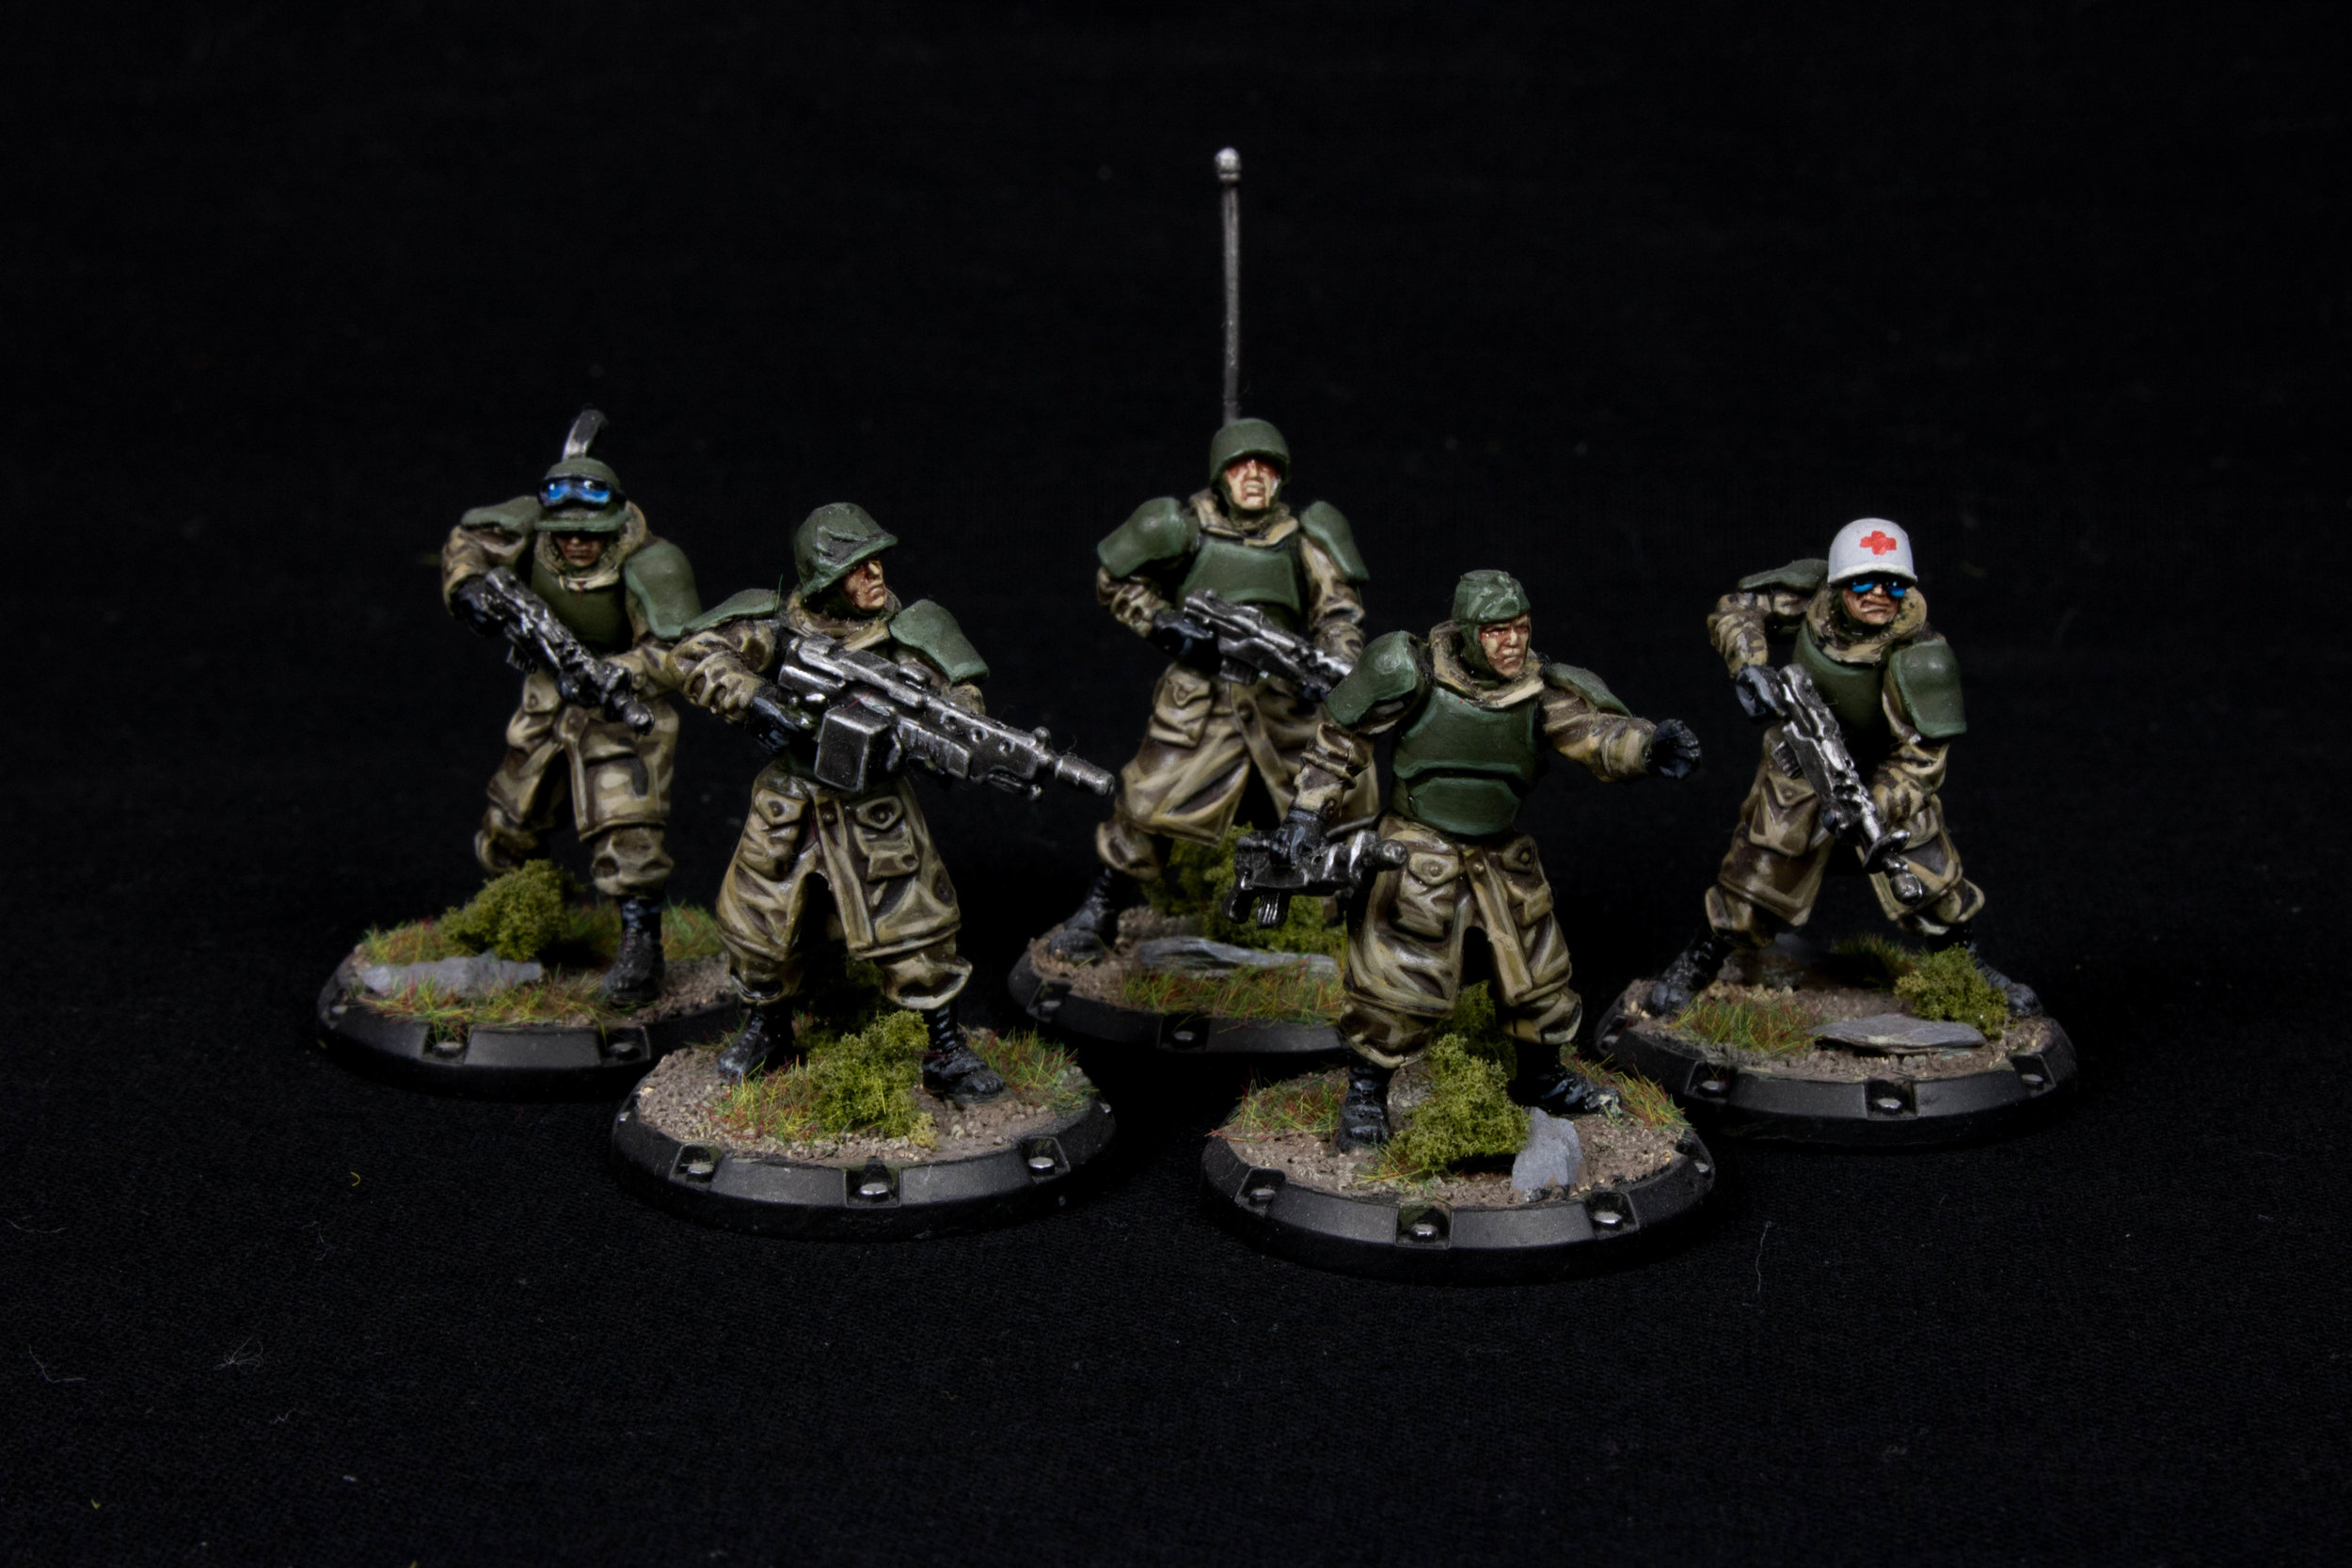 Dust Tactics WWII Warfare Germans Americans Axis Allies Bolt Action 28mm Alternate WWII-17.jpg